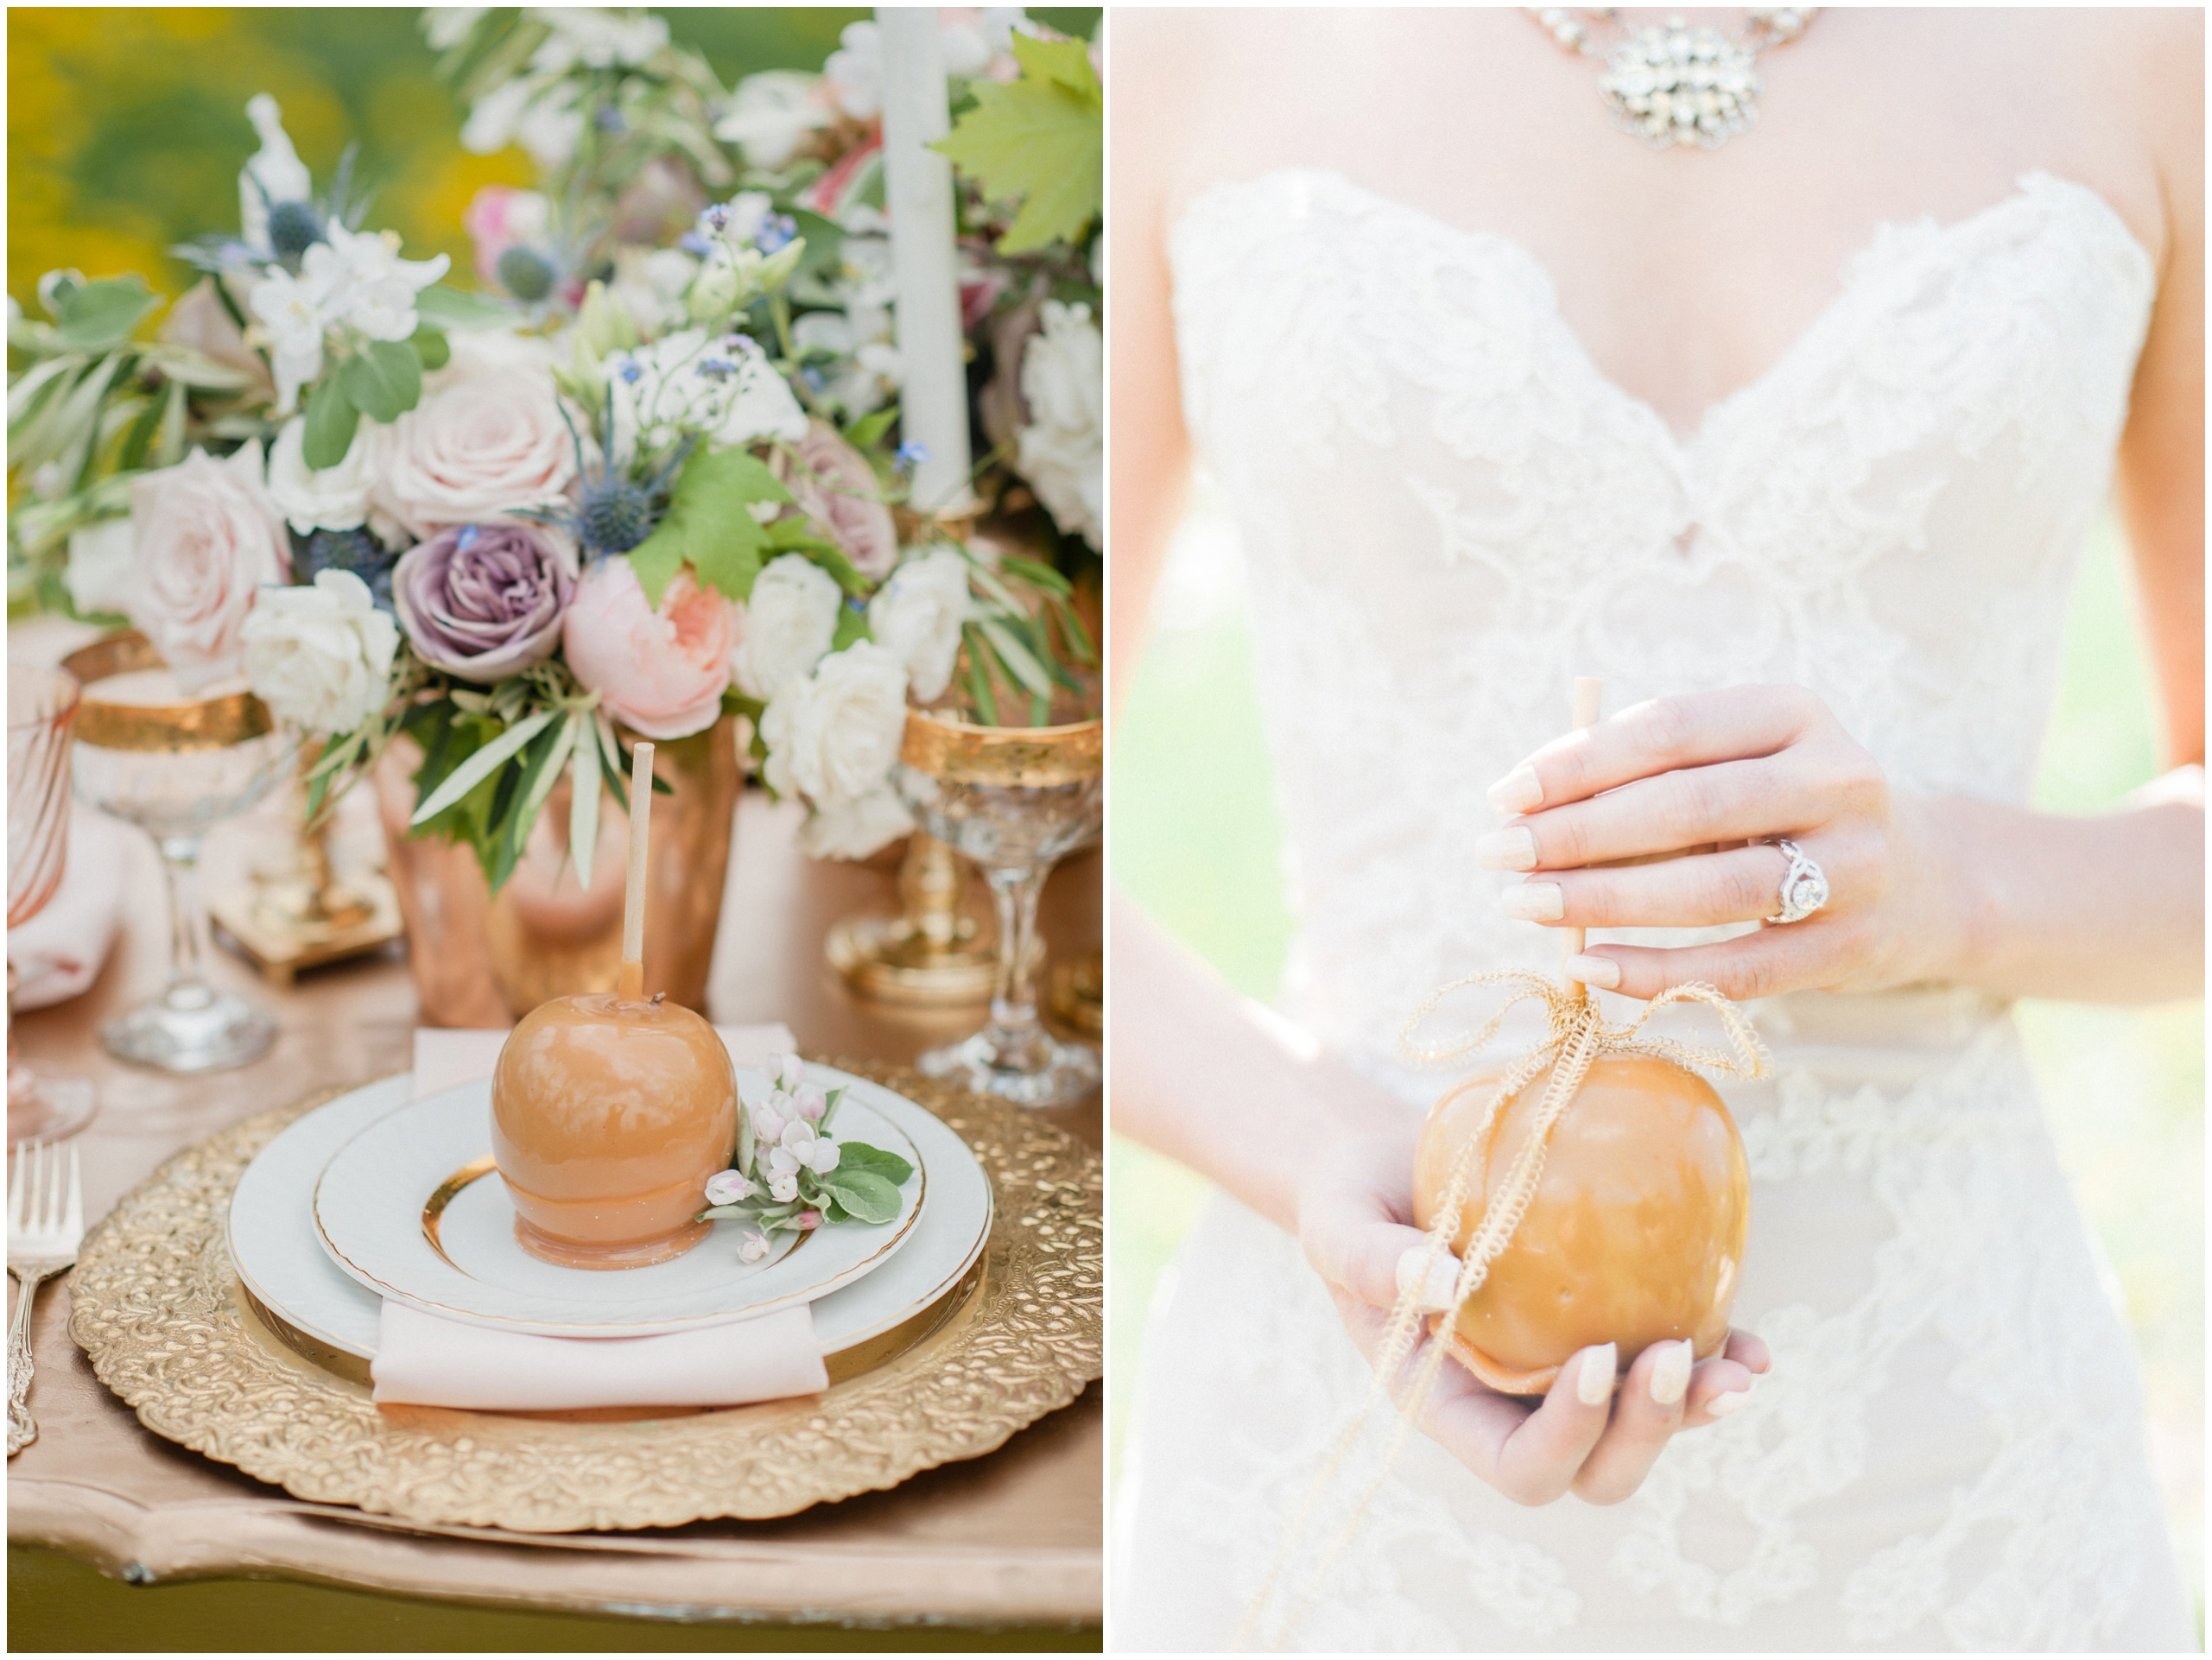 Wedding Inspiration: Wedding table featuring caramel apples, gold charger plates, and gold accents.